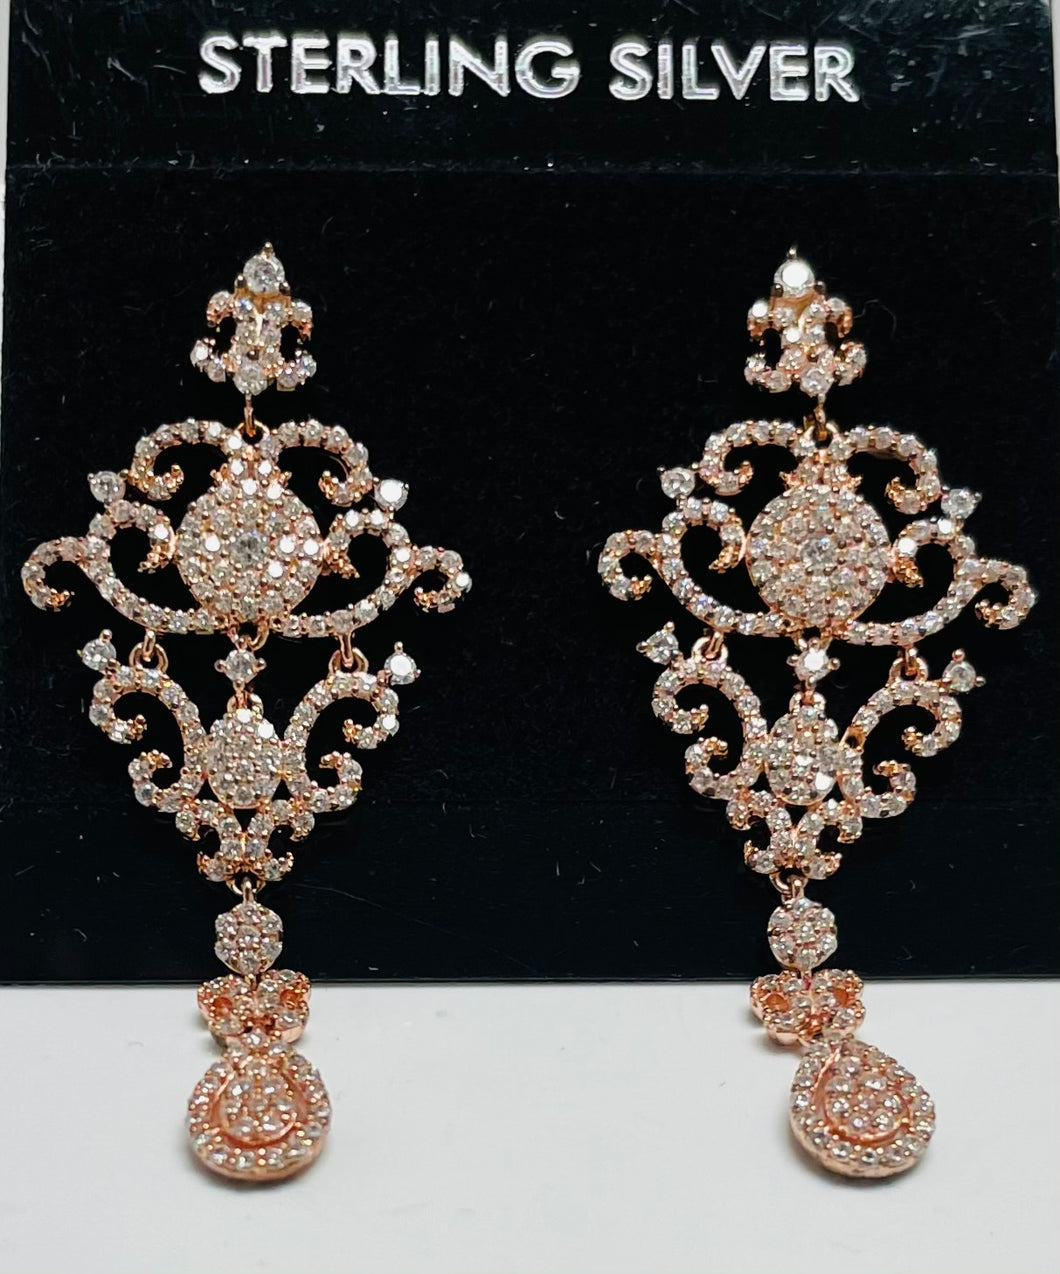 Sterling Silver Cubic Zircon Vermeil Rose Gold Chandelier Earrings.